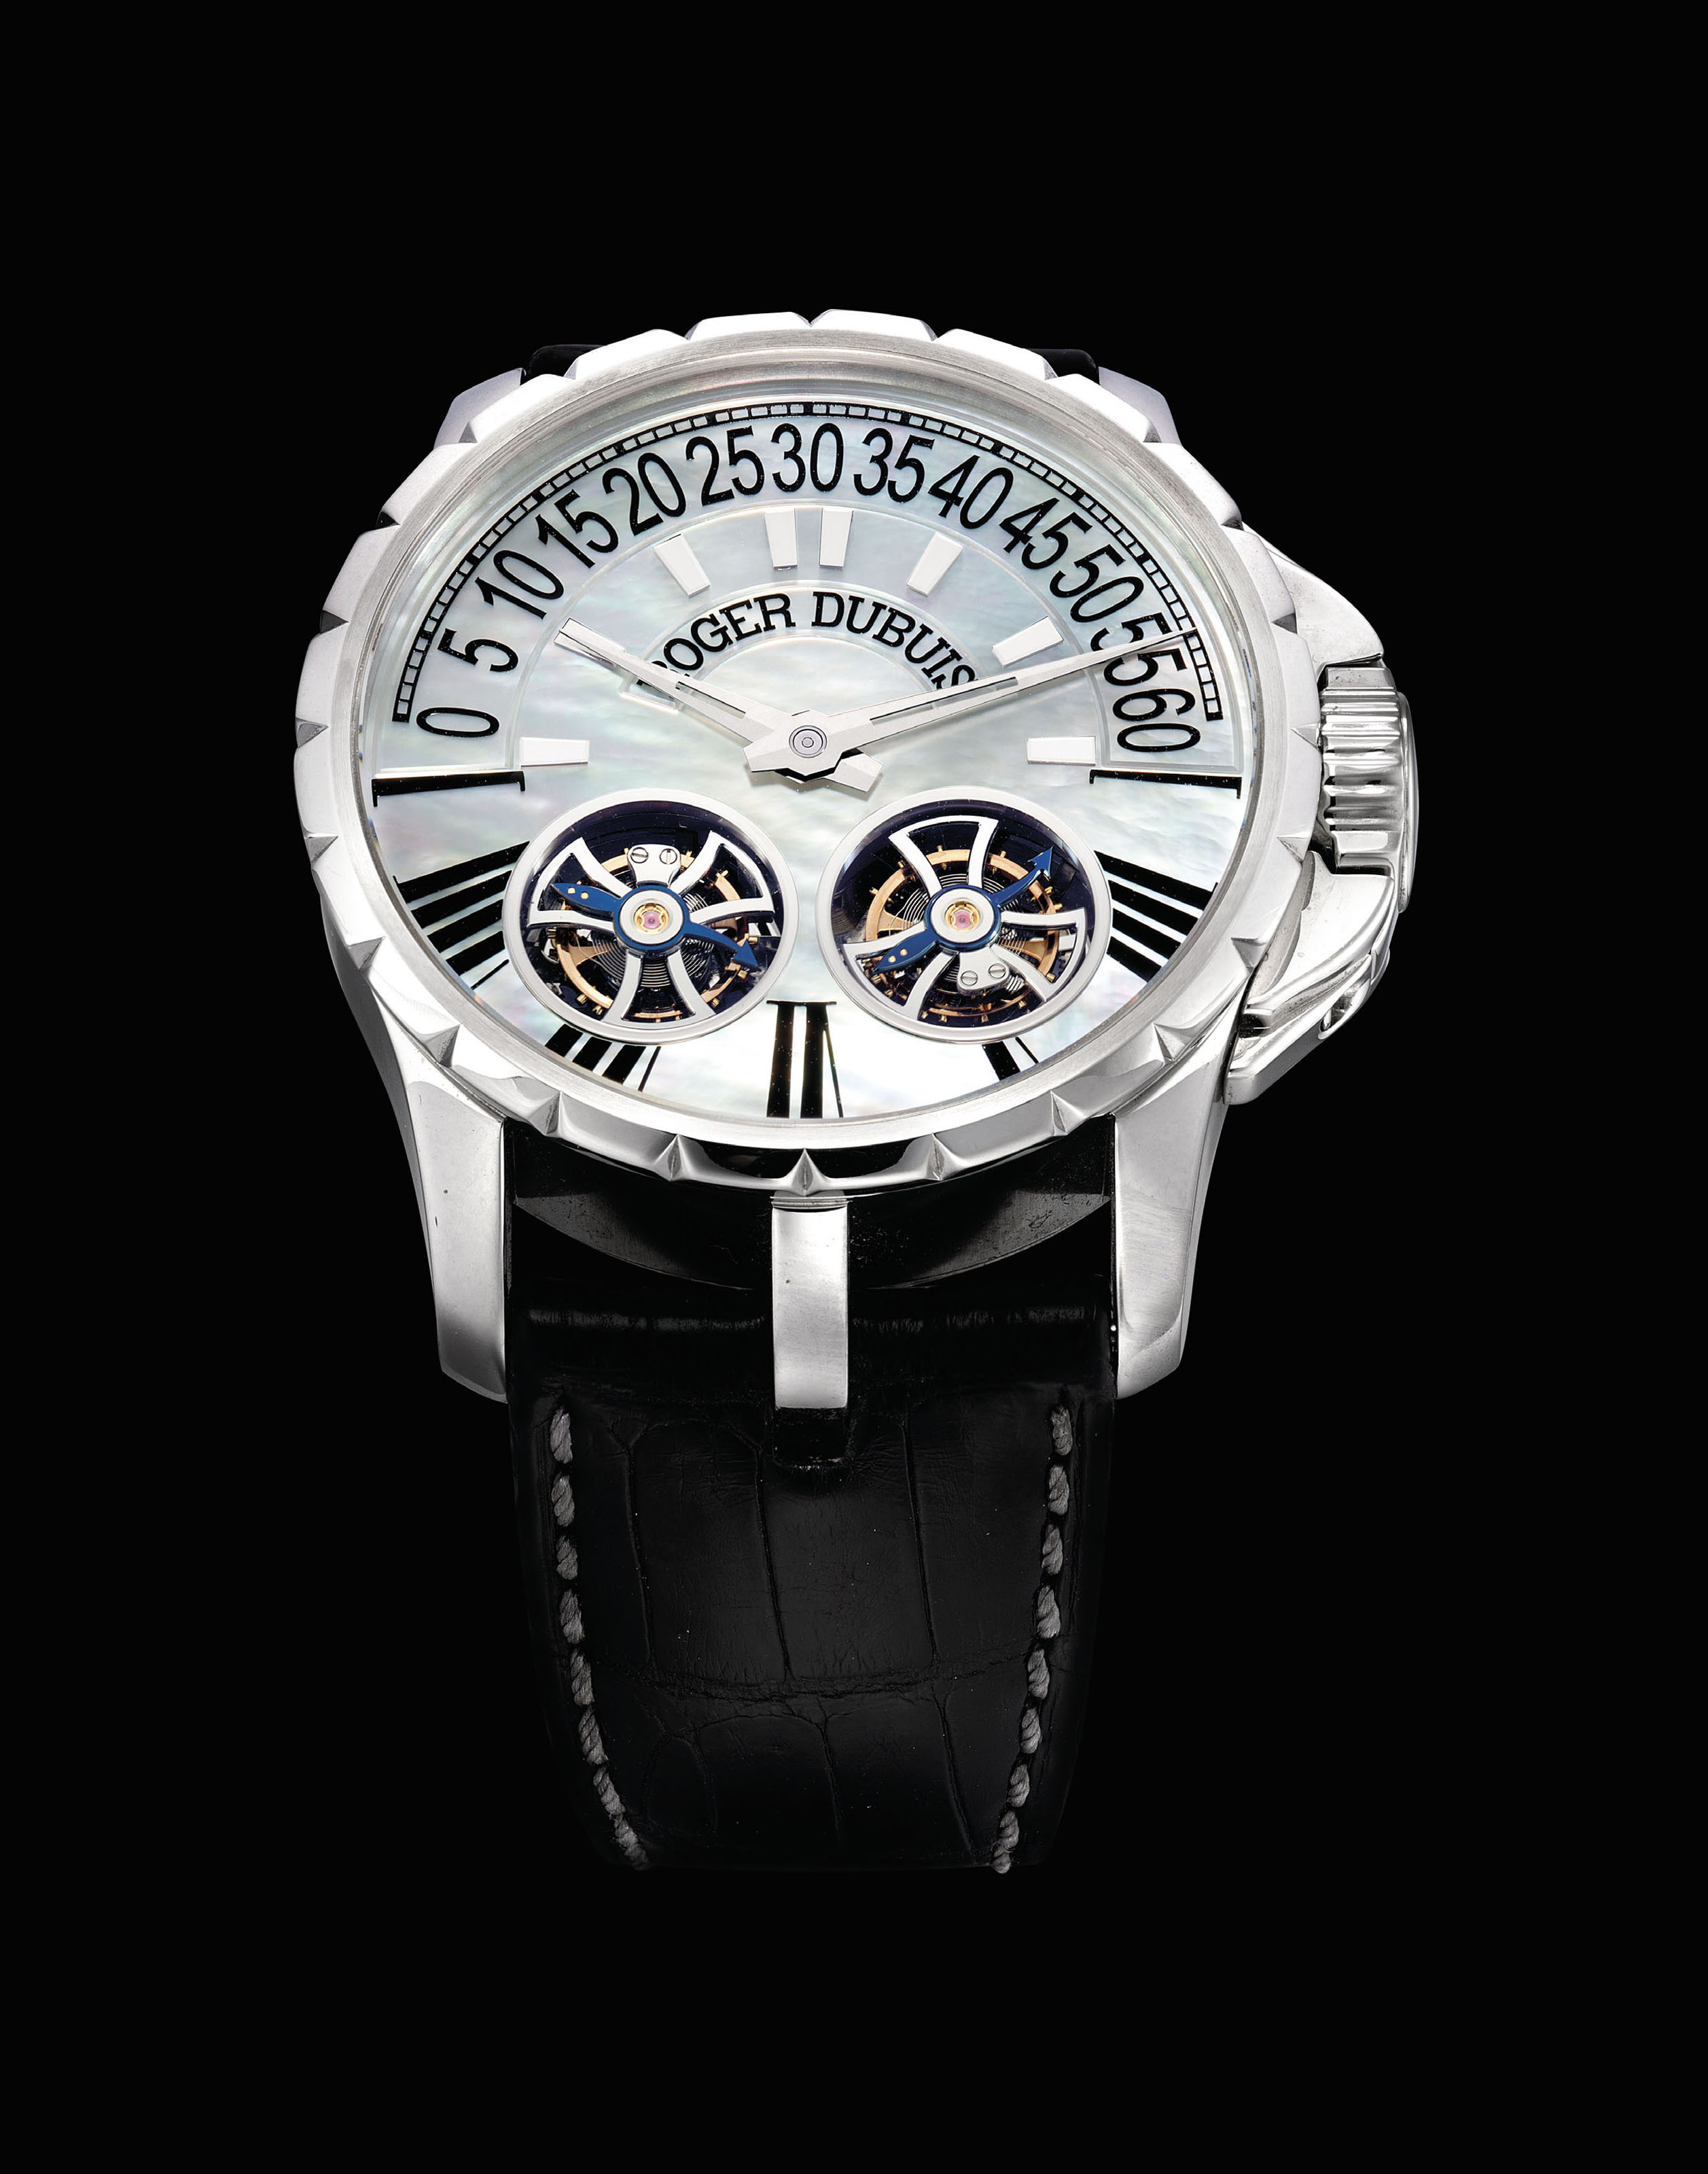 ROGER DUBUIS. A FINE STAINLESS STEEL LIMITED EDITION DOUBLE TOURBILLON WRISTWATCH WITH RETROGRADE MINUTES, POWER RESERVE AND MOTHER-OF-PEARL DIAL